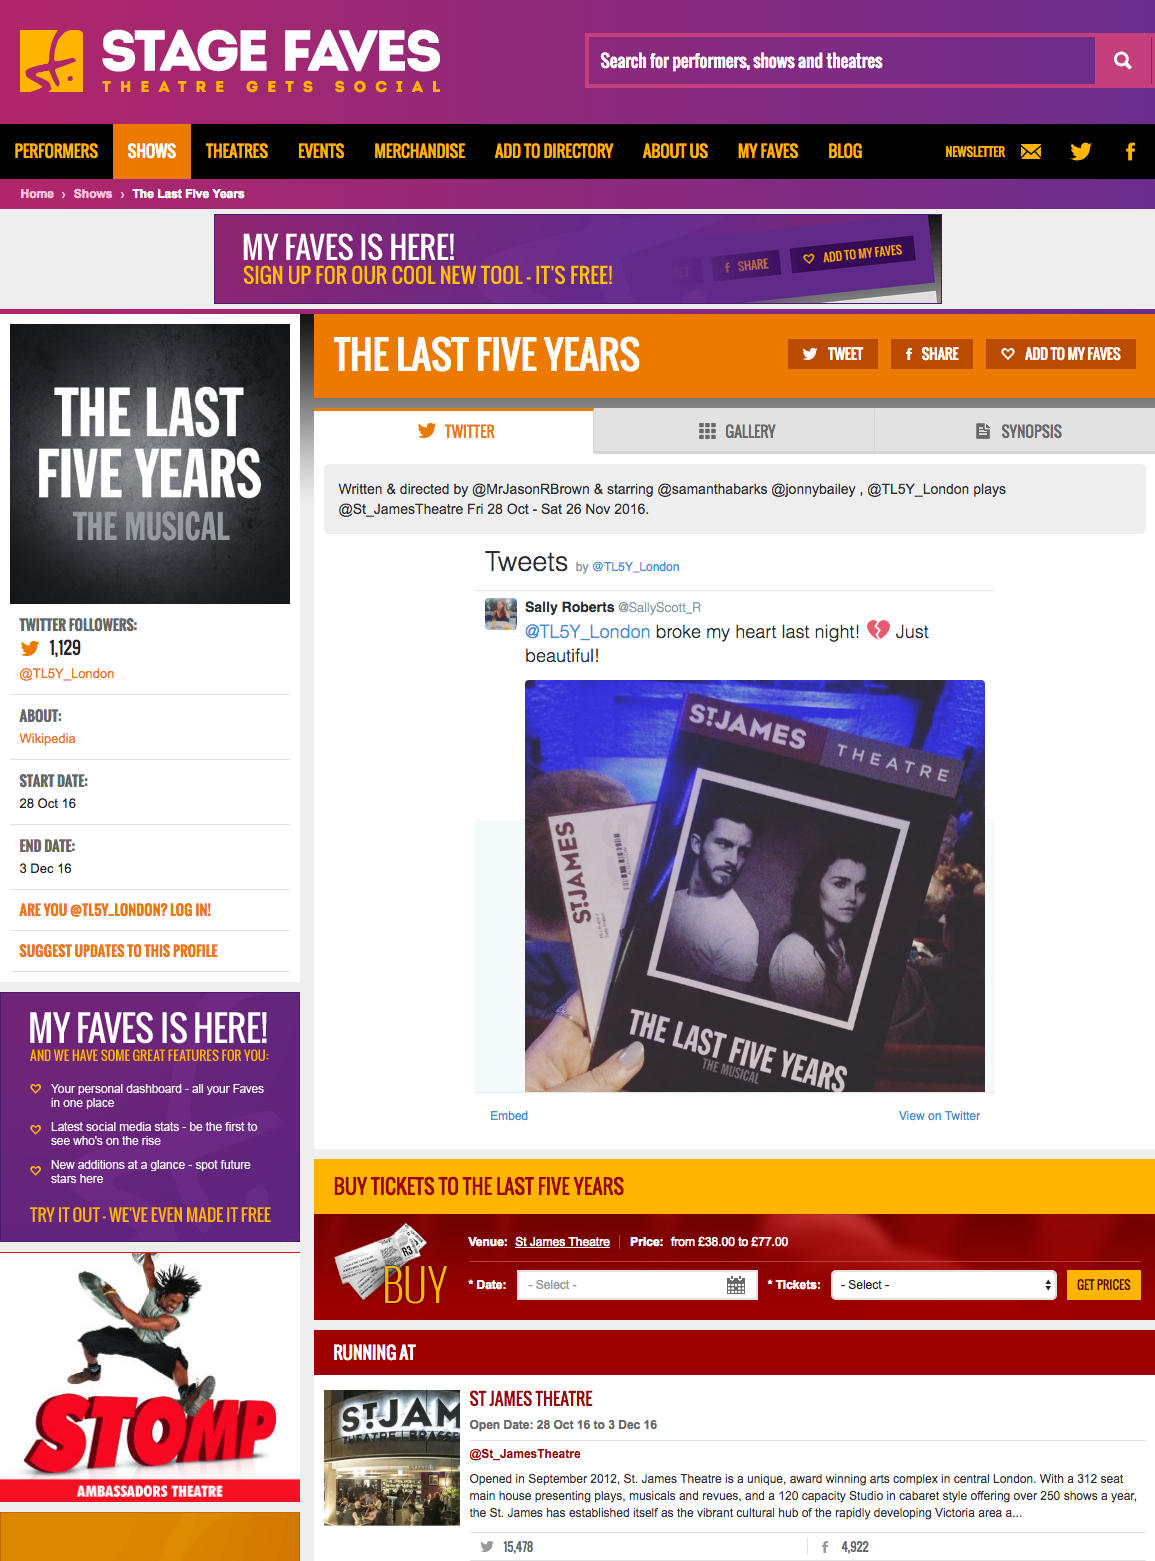 Get all social media for The Last Five Years & its stars on www.stagefaves.com